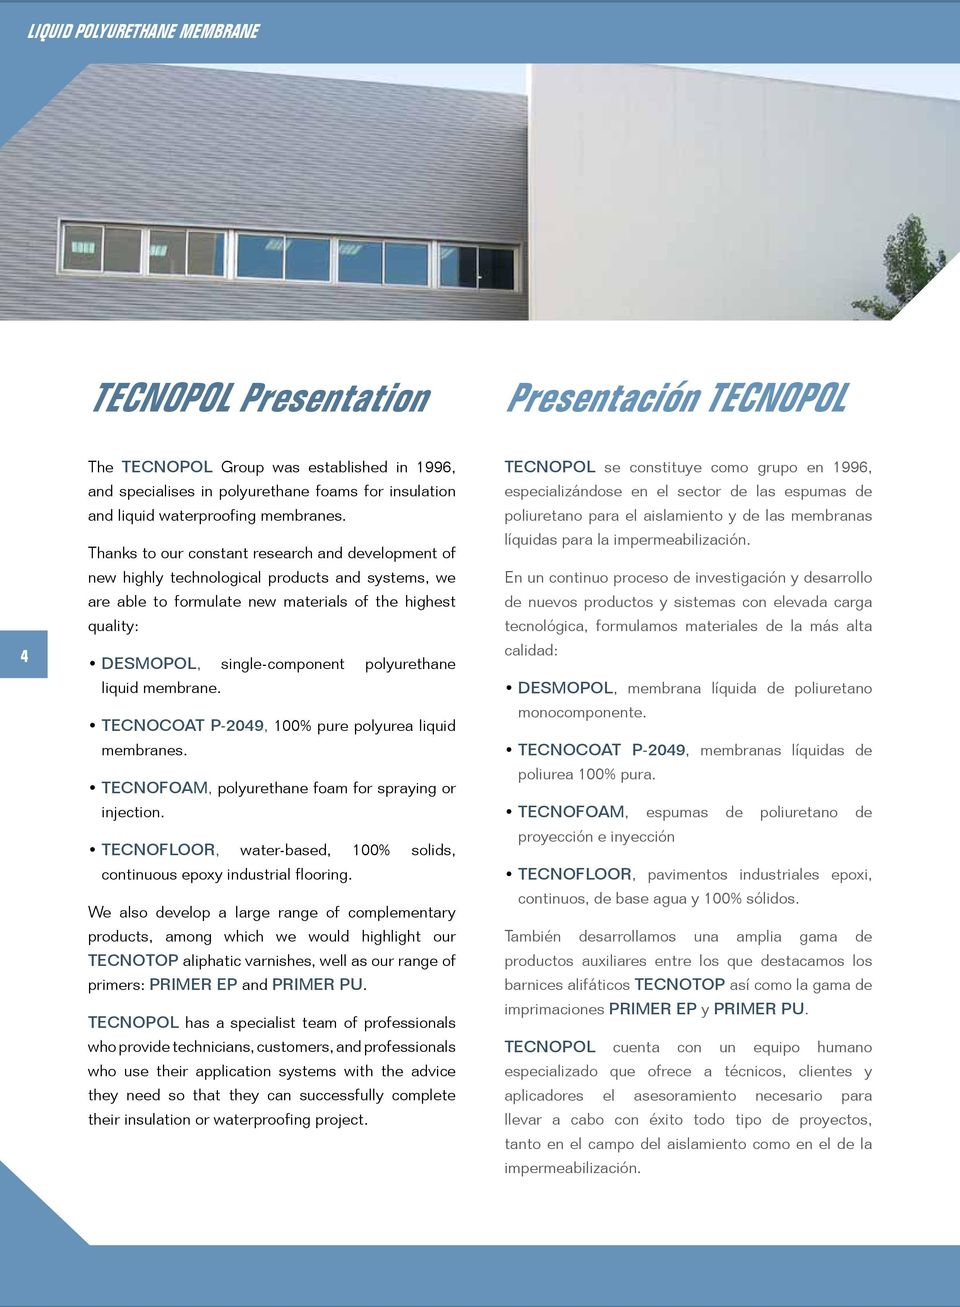 Thanks to our constant research and development of new highly technological products and systems, we are able to formulate new materials of the highest quality: DESMOPOL, single-component